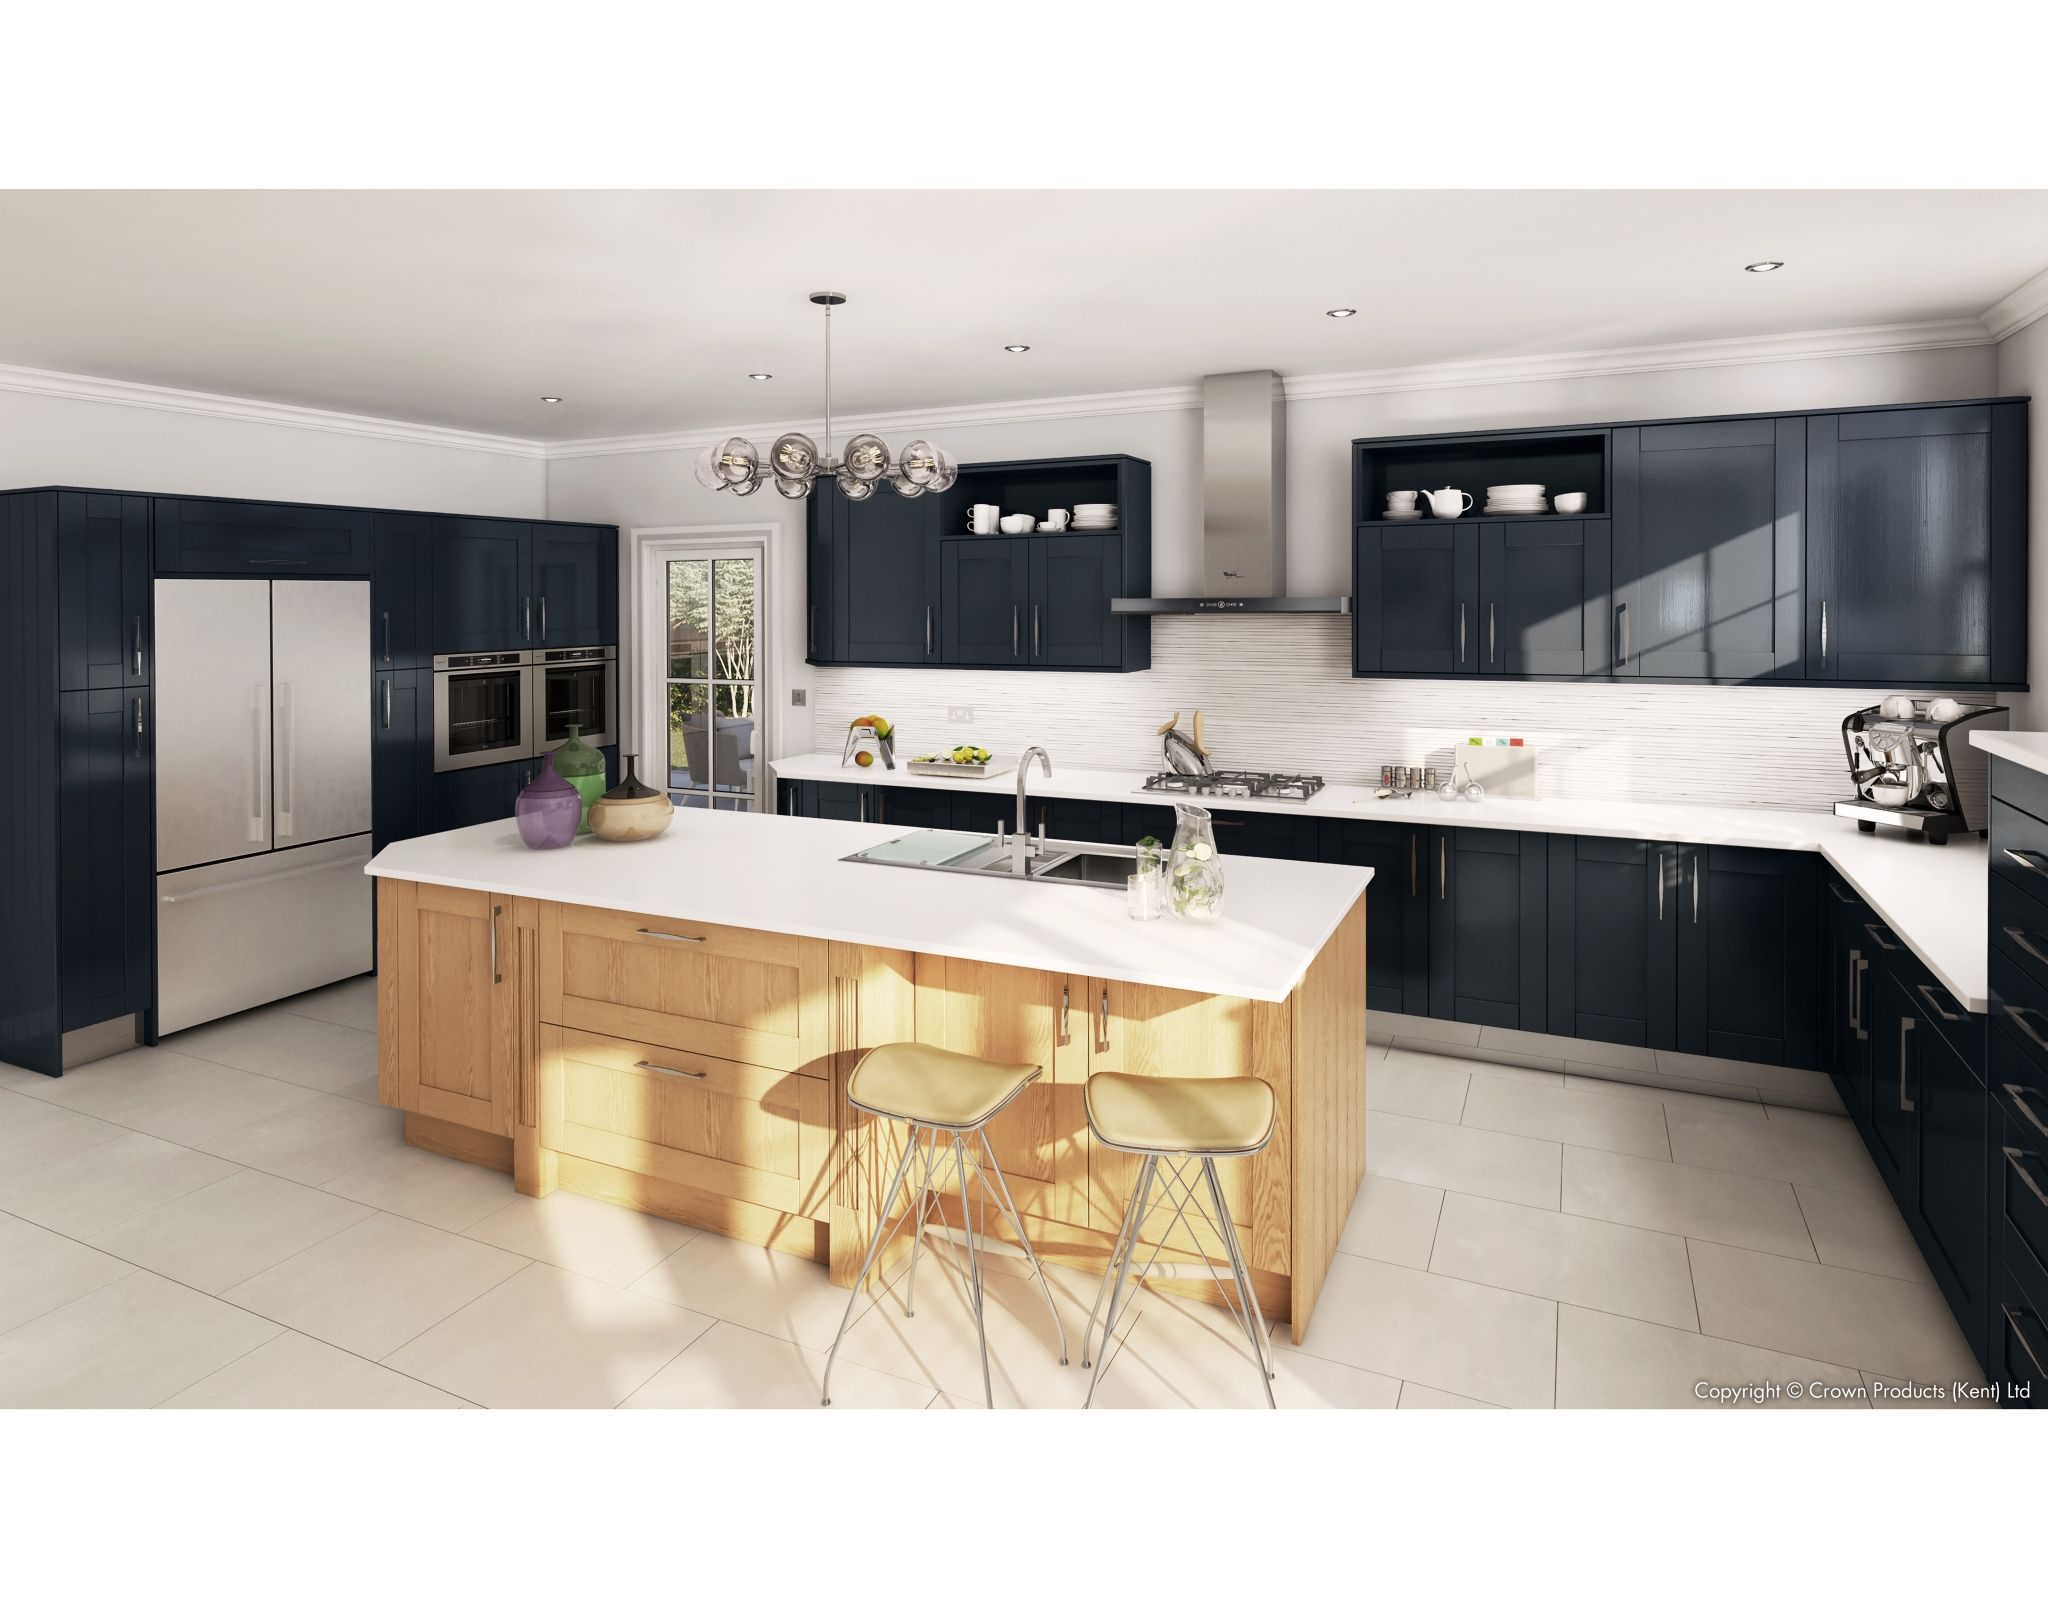 big news coming soon from crown kitchens and bedrooms keep an eye rh pinterest com